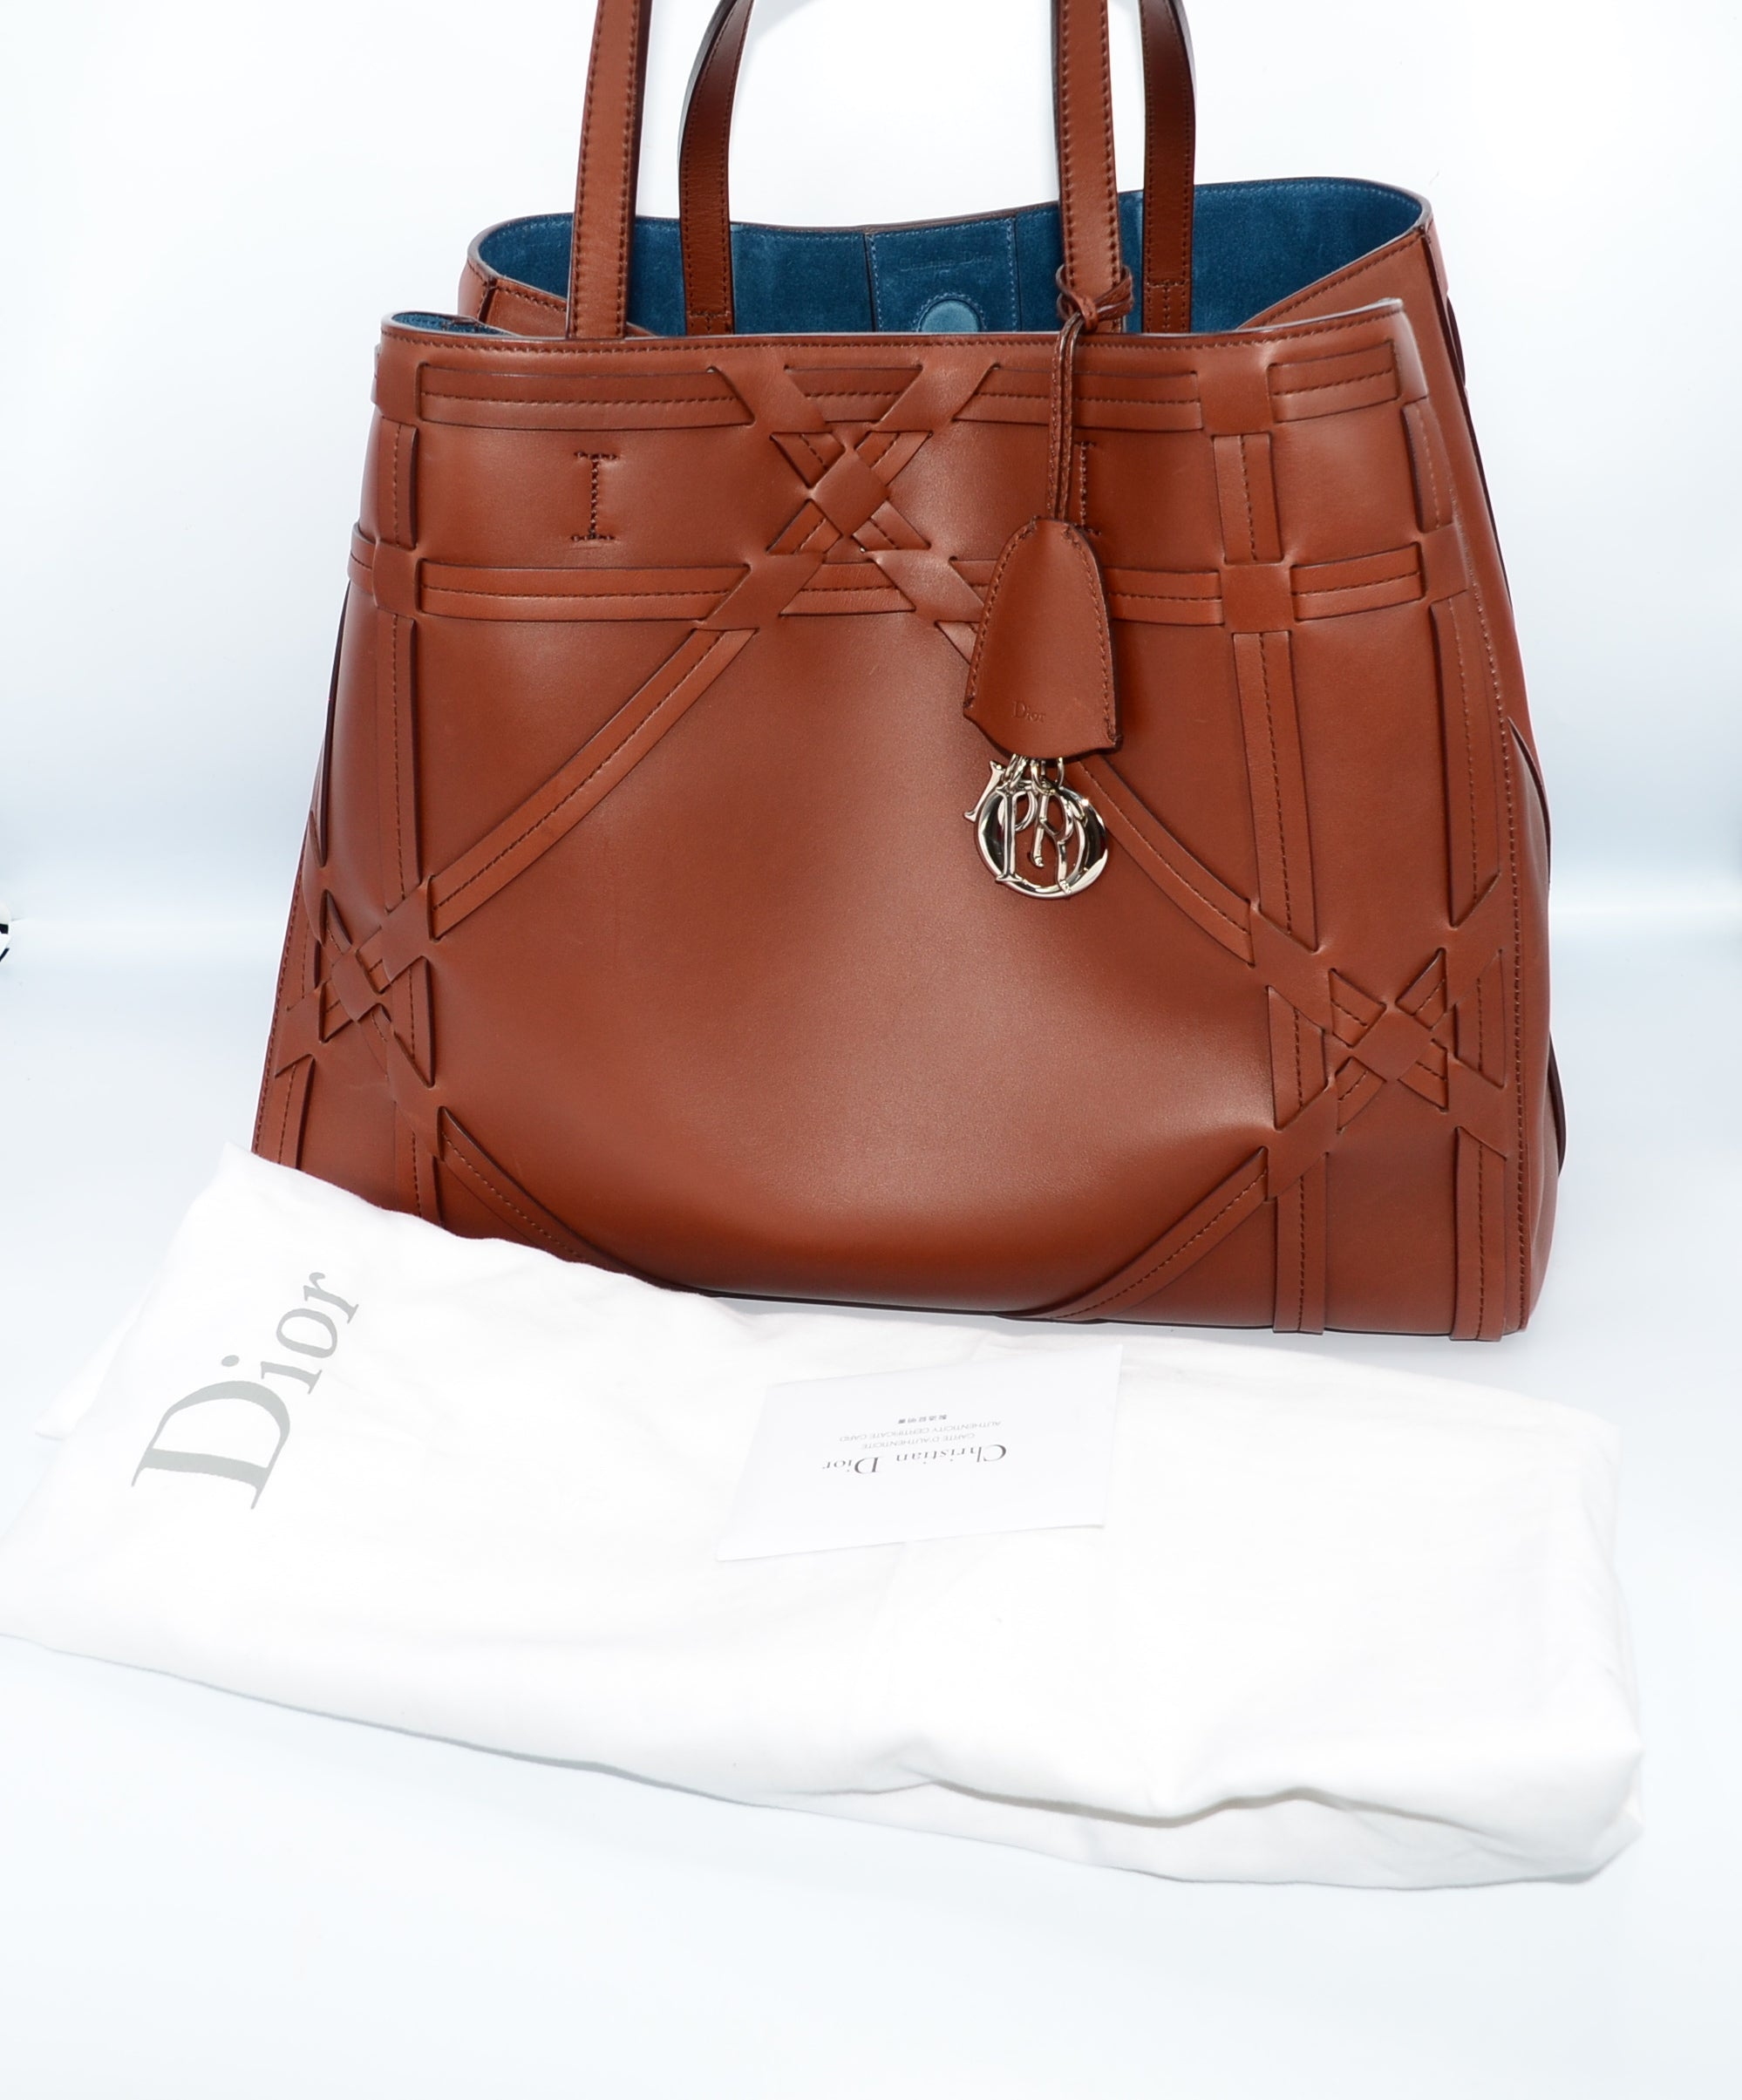 Christian Dior tote bag - Iconics Preloved Luxury